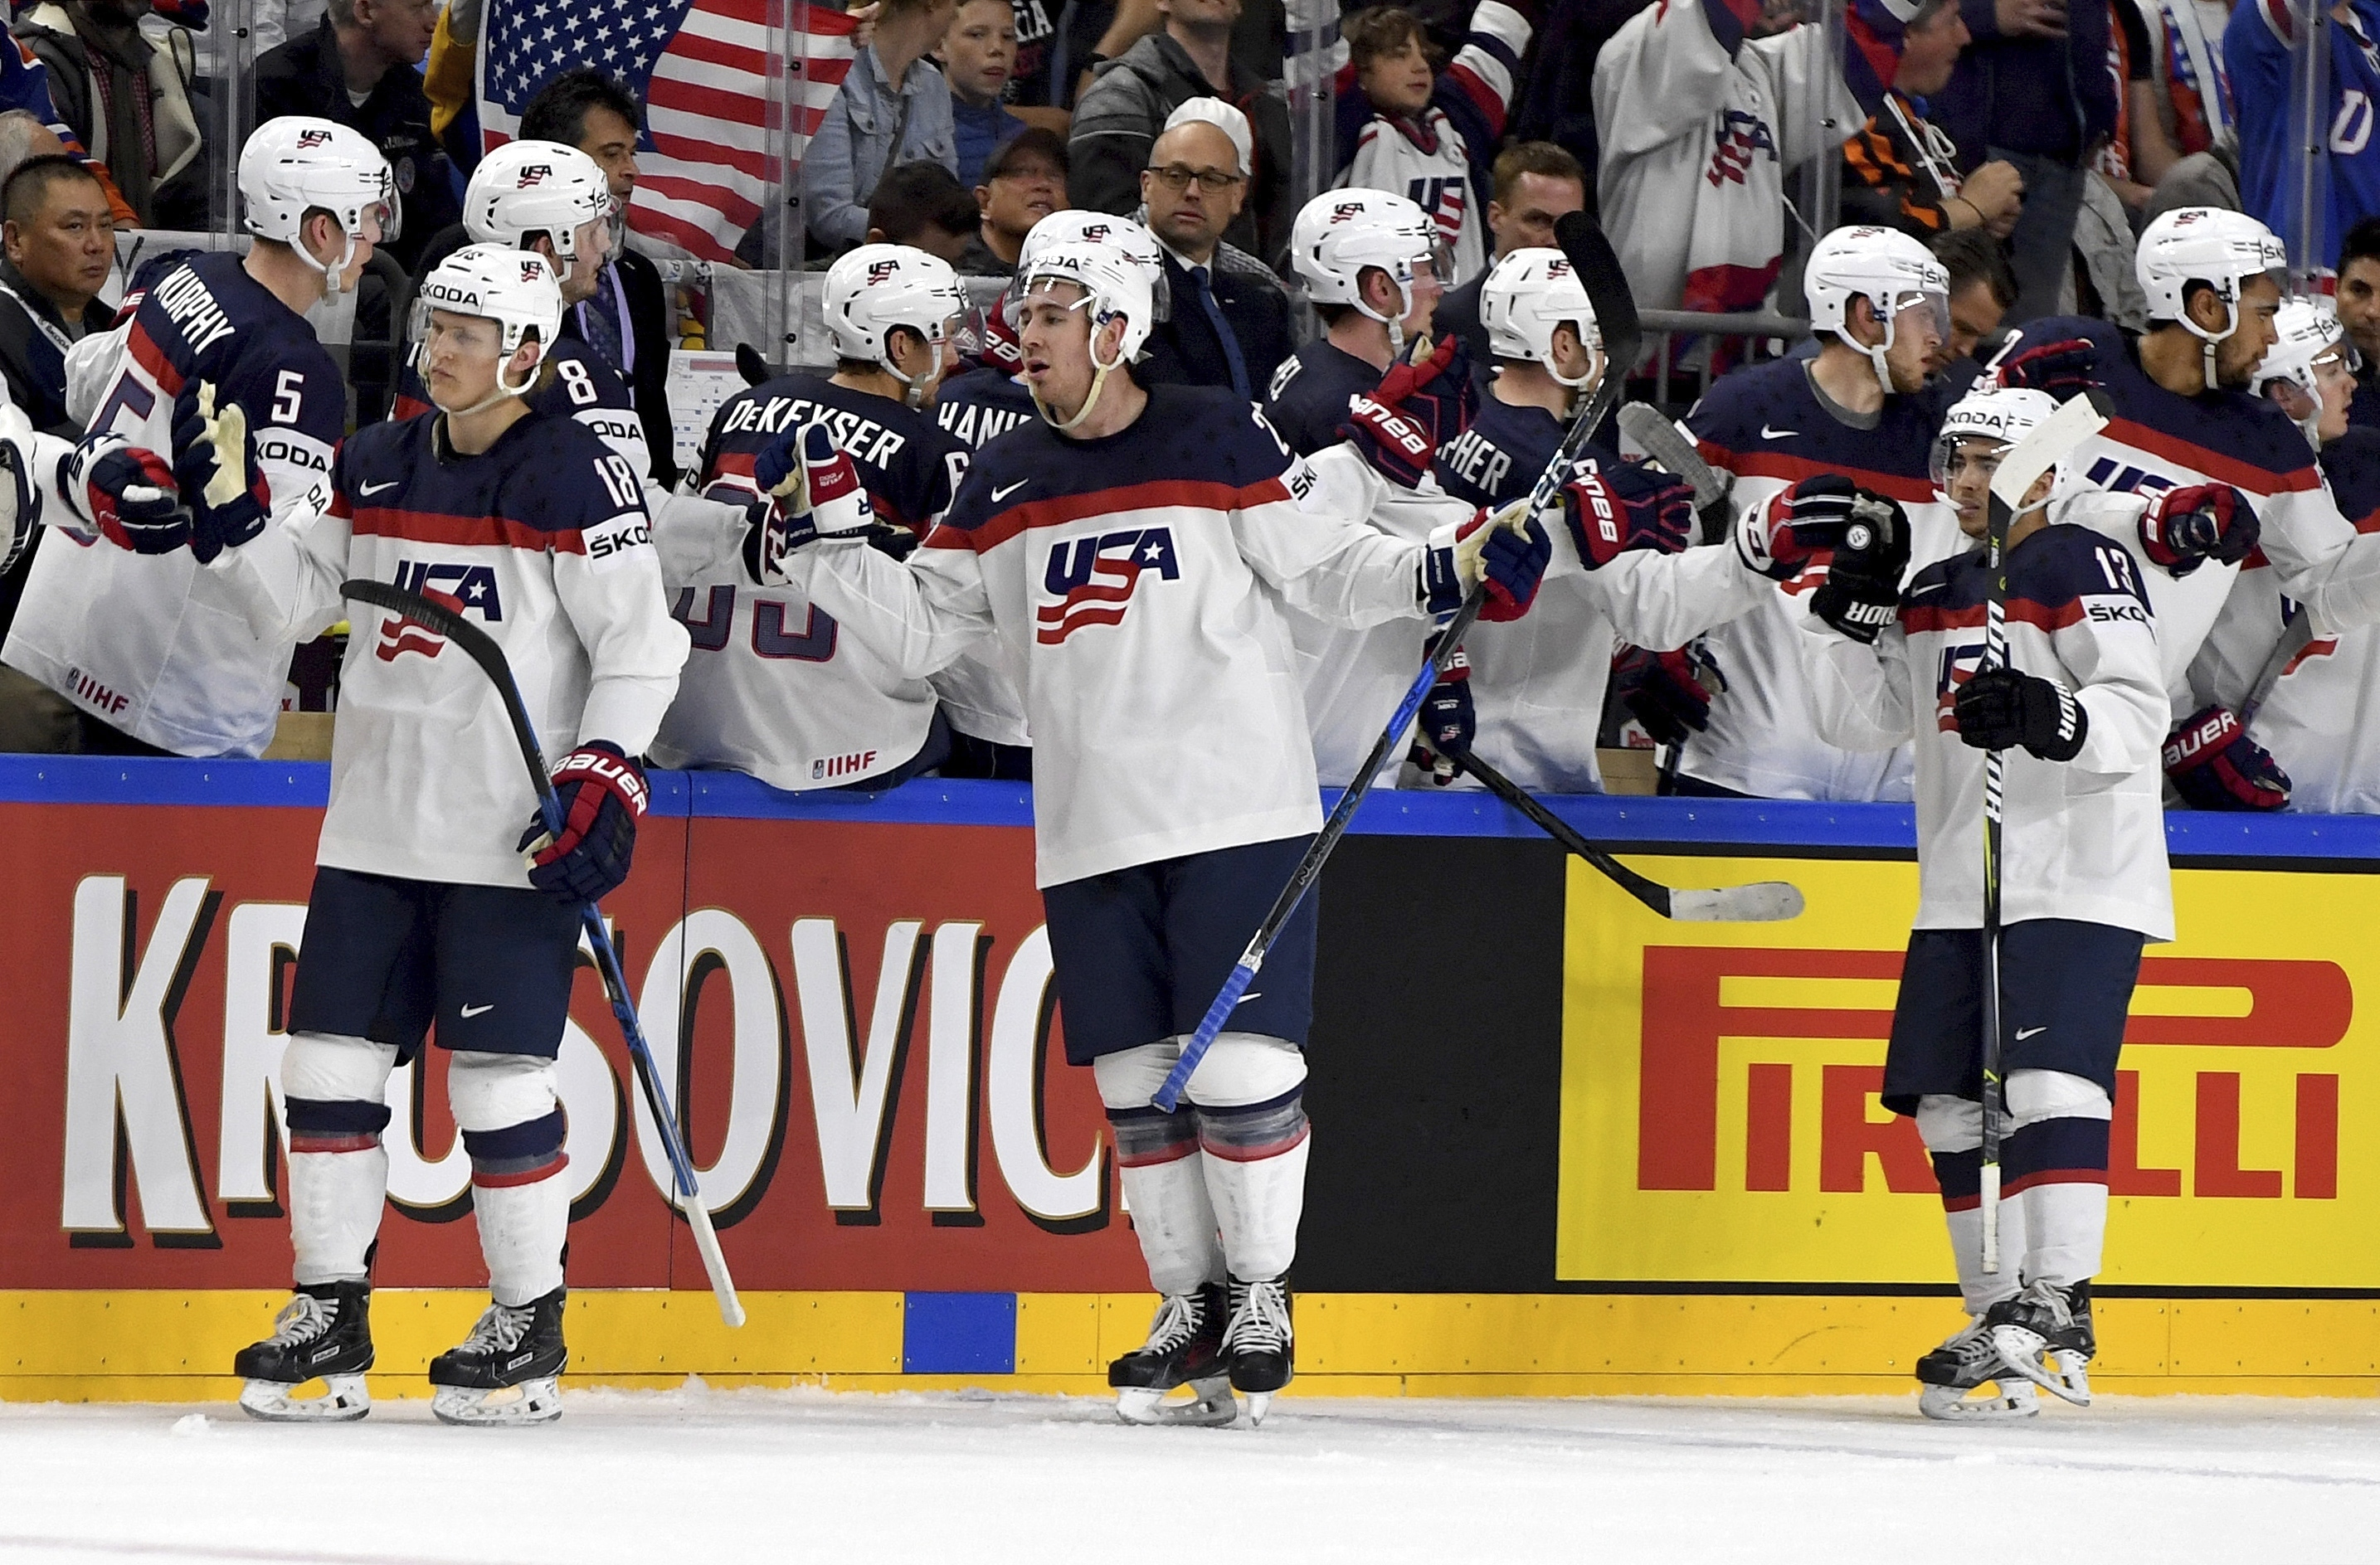 US players celebrate a goal during a group A match between Slovakia and USA at the 2017 Hockey World Championships in the Lanxess Arena in  Cologne, Germany, Sunday, May 14, 2017.  (Monika Skolimowska/dpa via AP)